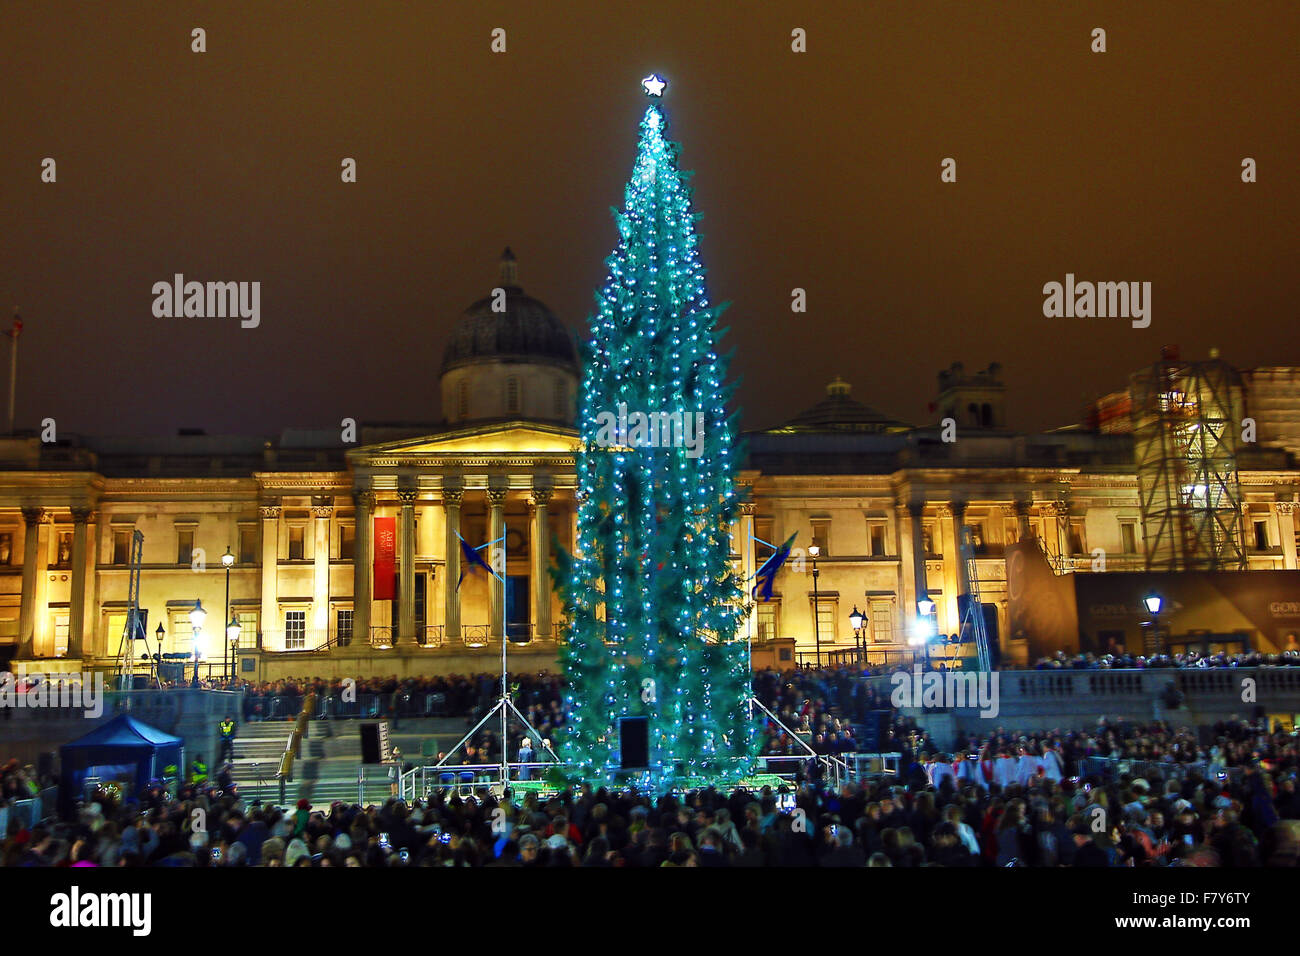 London, UK. 3rd Dec, 2015. Crowds braved the threatening rain to watch the lighting of the Trafalgar Square Christmas - Stock Image